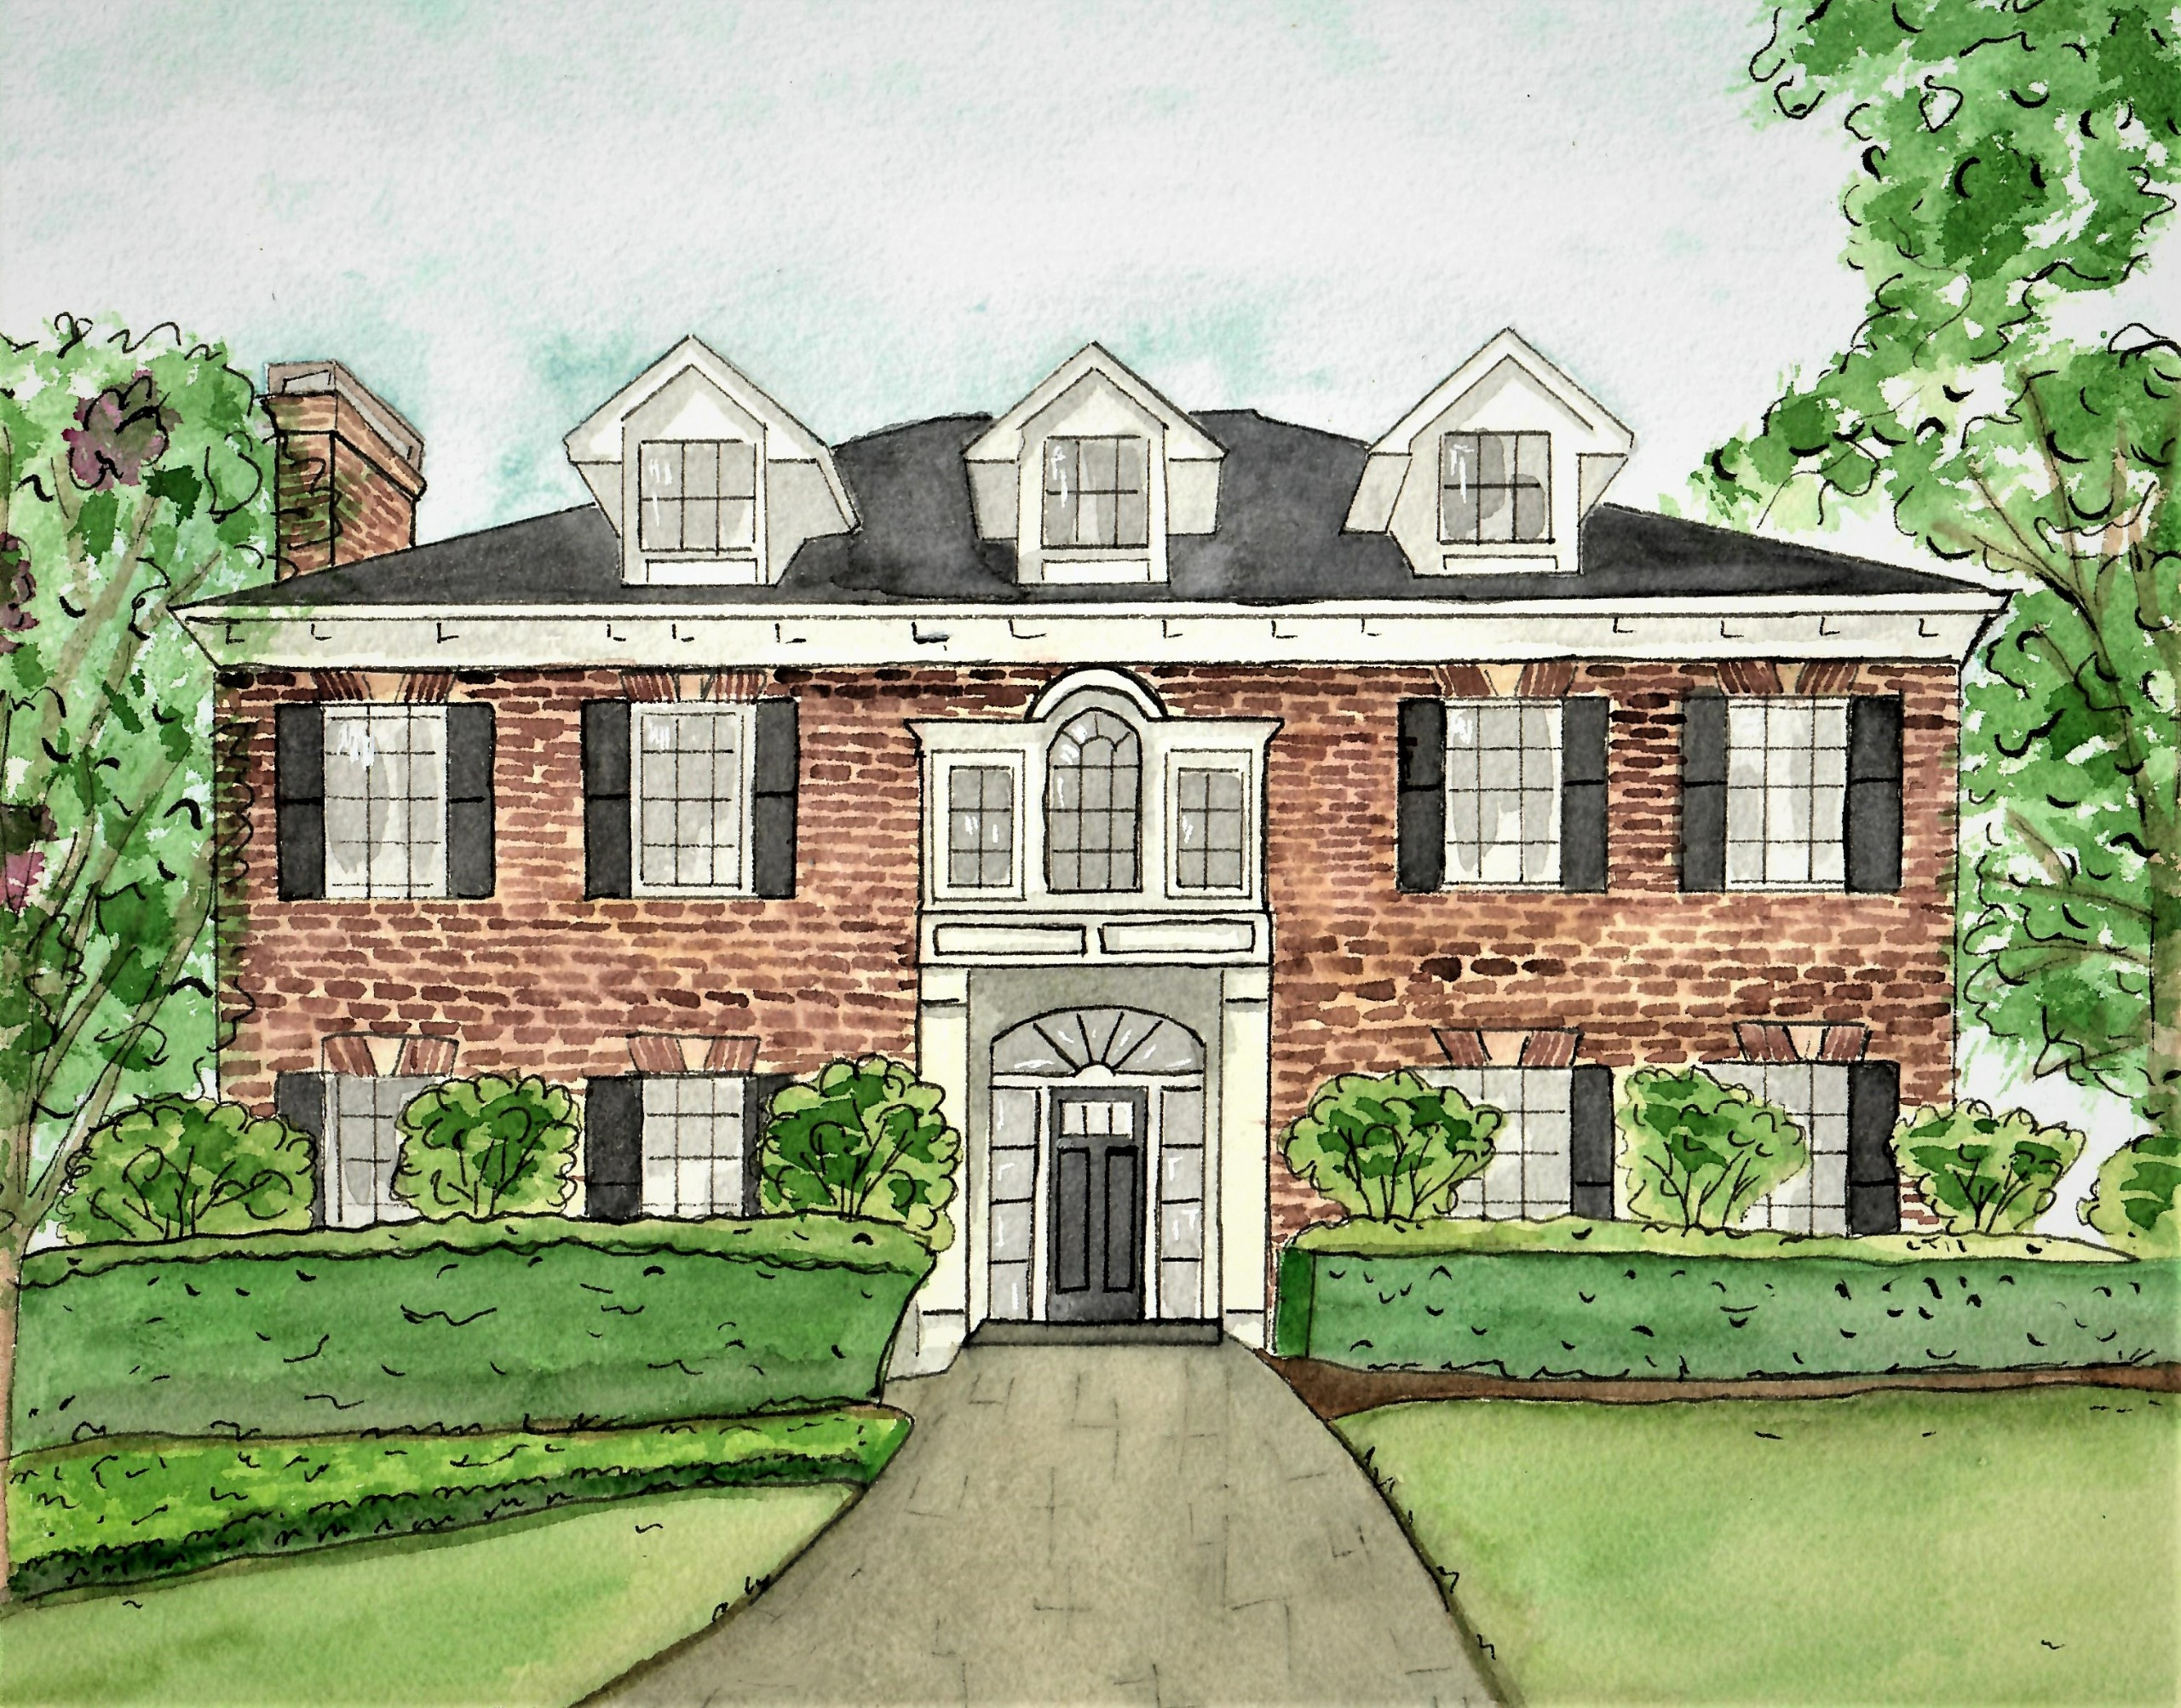 Custom Watercolor Home Portrait Hand Painted House Painting